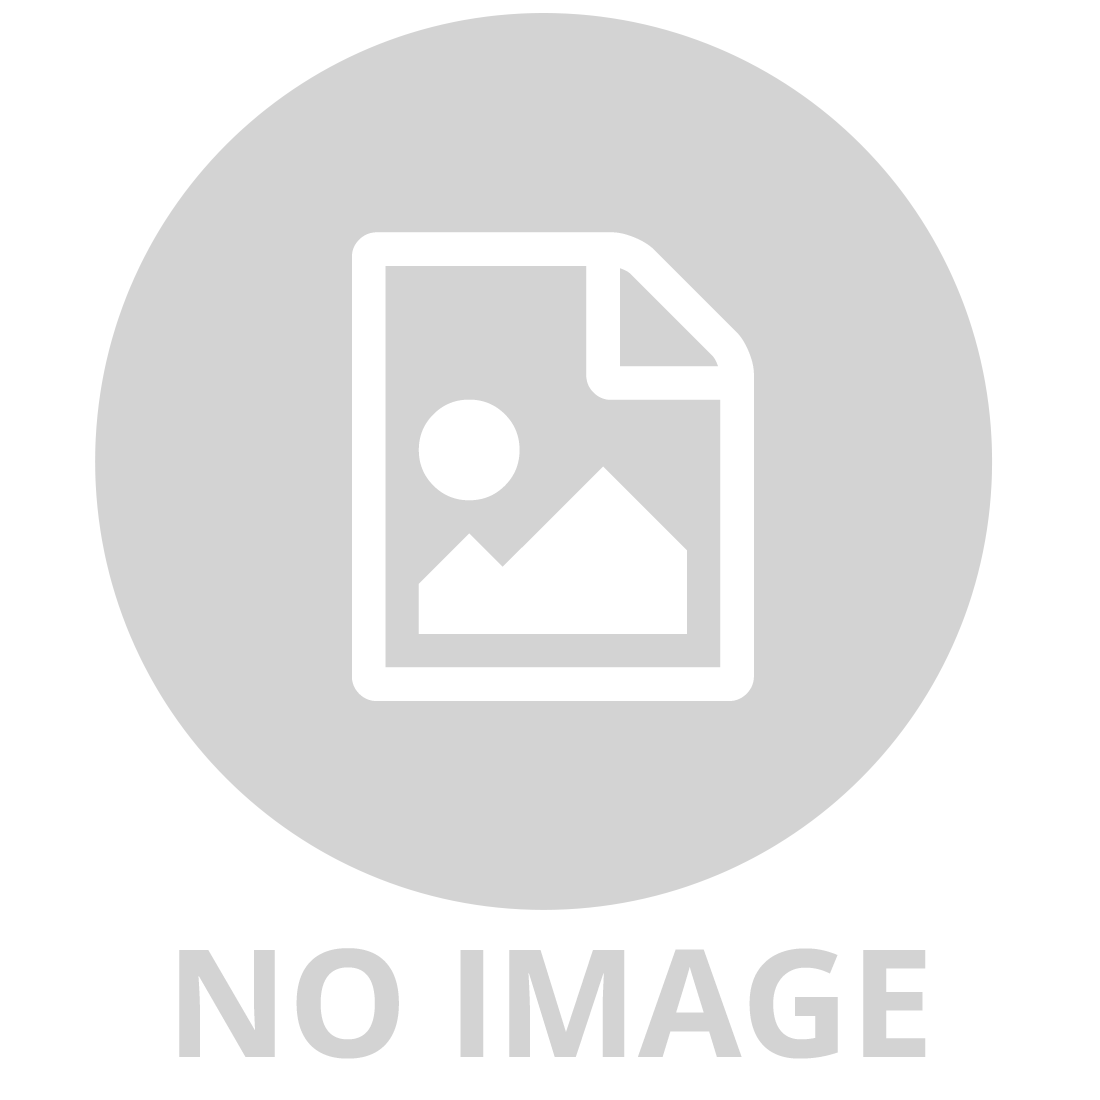 LEGO IDEAS 21315 ONCE UPON A BRICK POP-UP BOOK